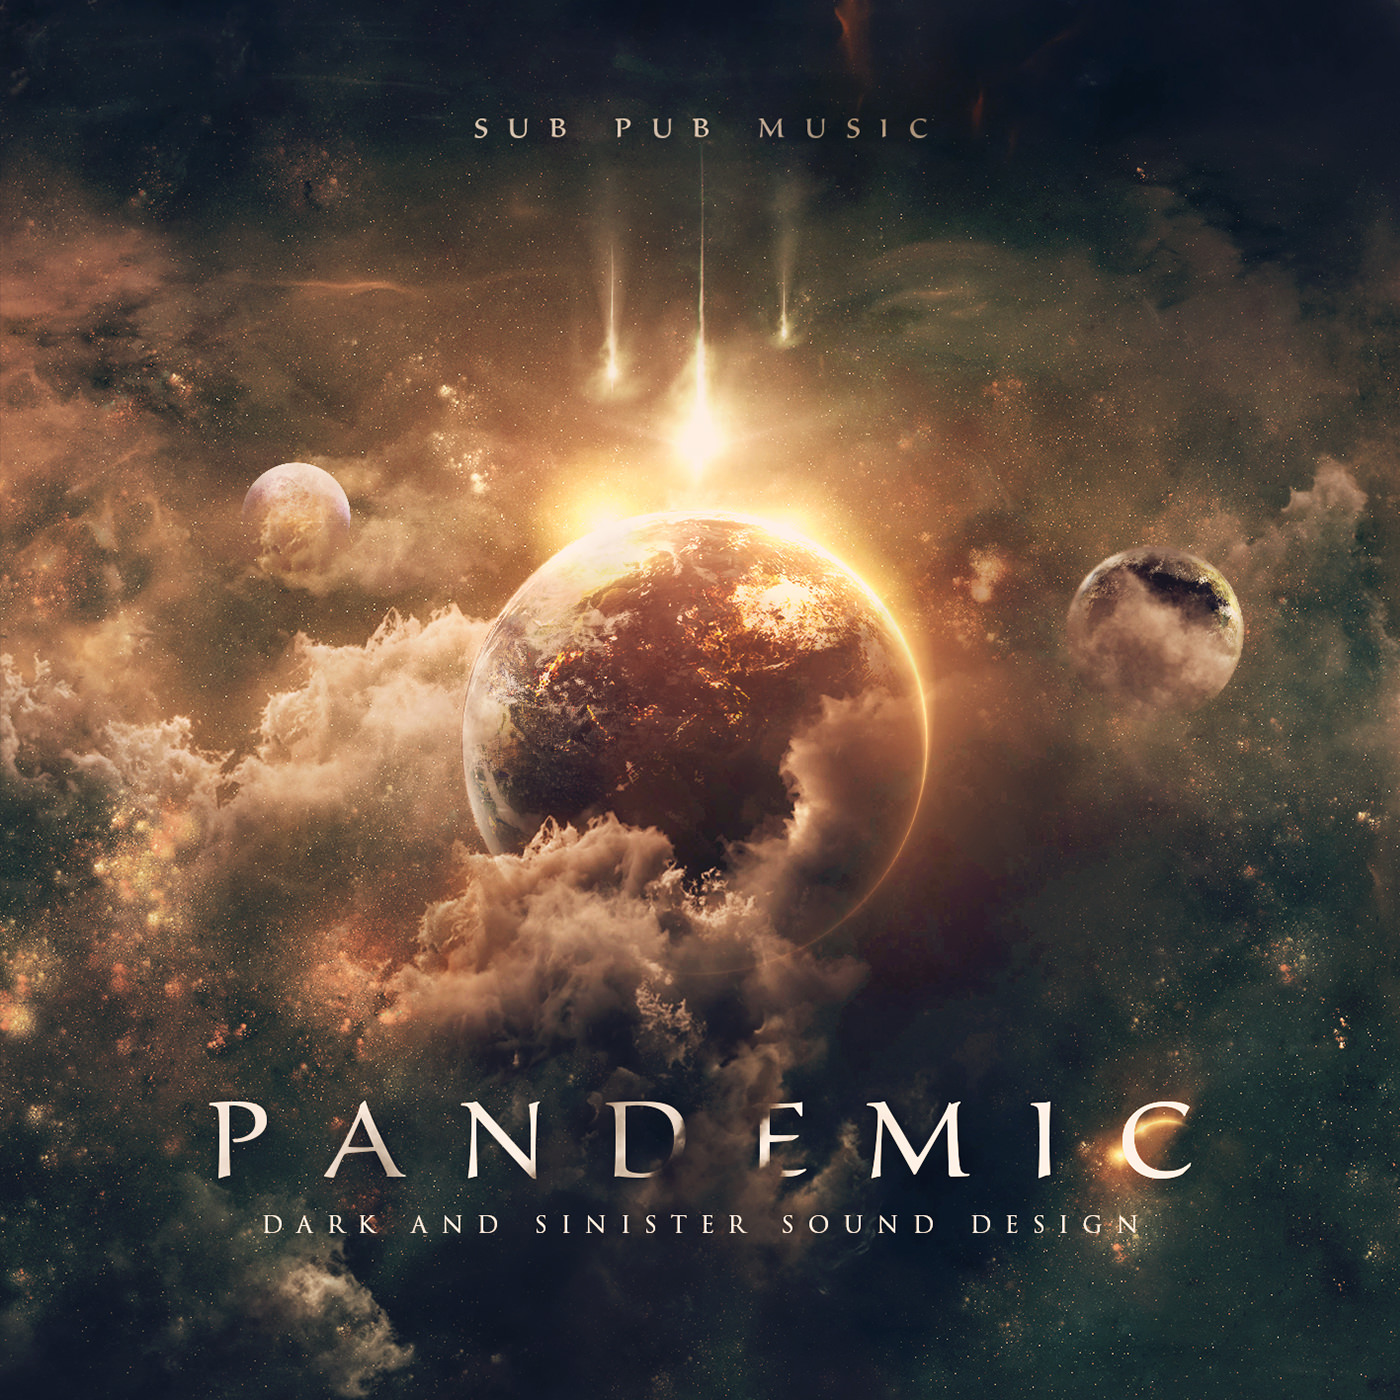 Copy of Sub Pub Music - Pandemic - Cody Still - Composer - Music